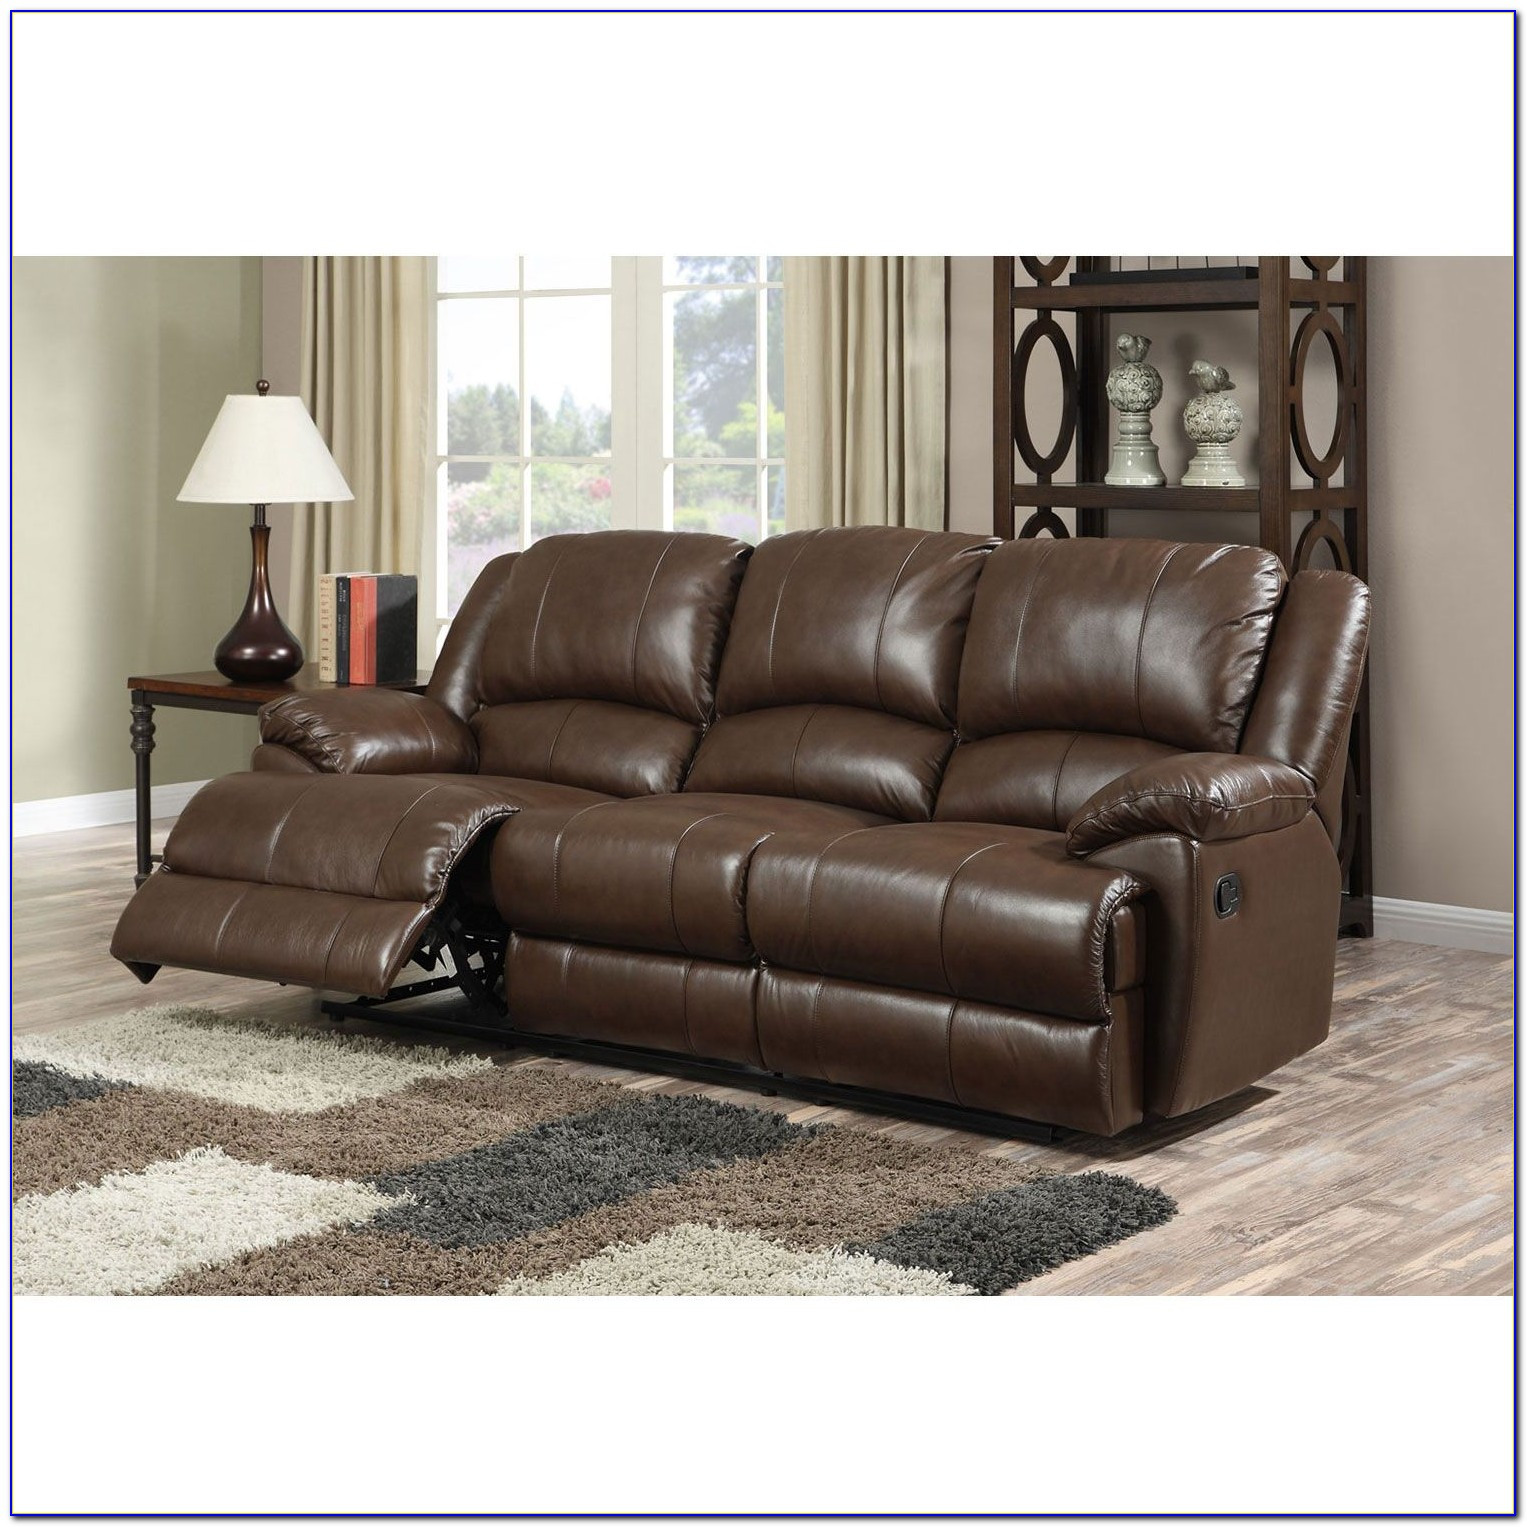 Best ideas about Costco Sofa Set . Save or Pin Leather Sofa Set Costco Simon Li Leather Sofa Furniture Now.